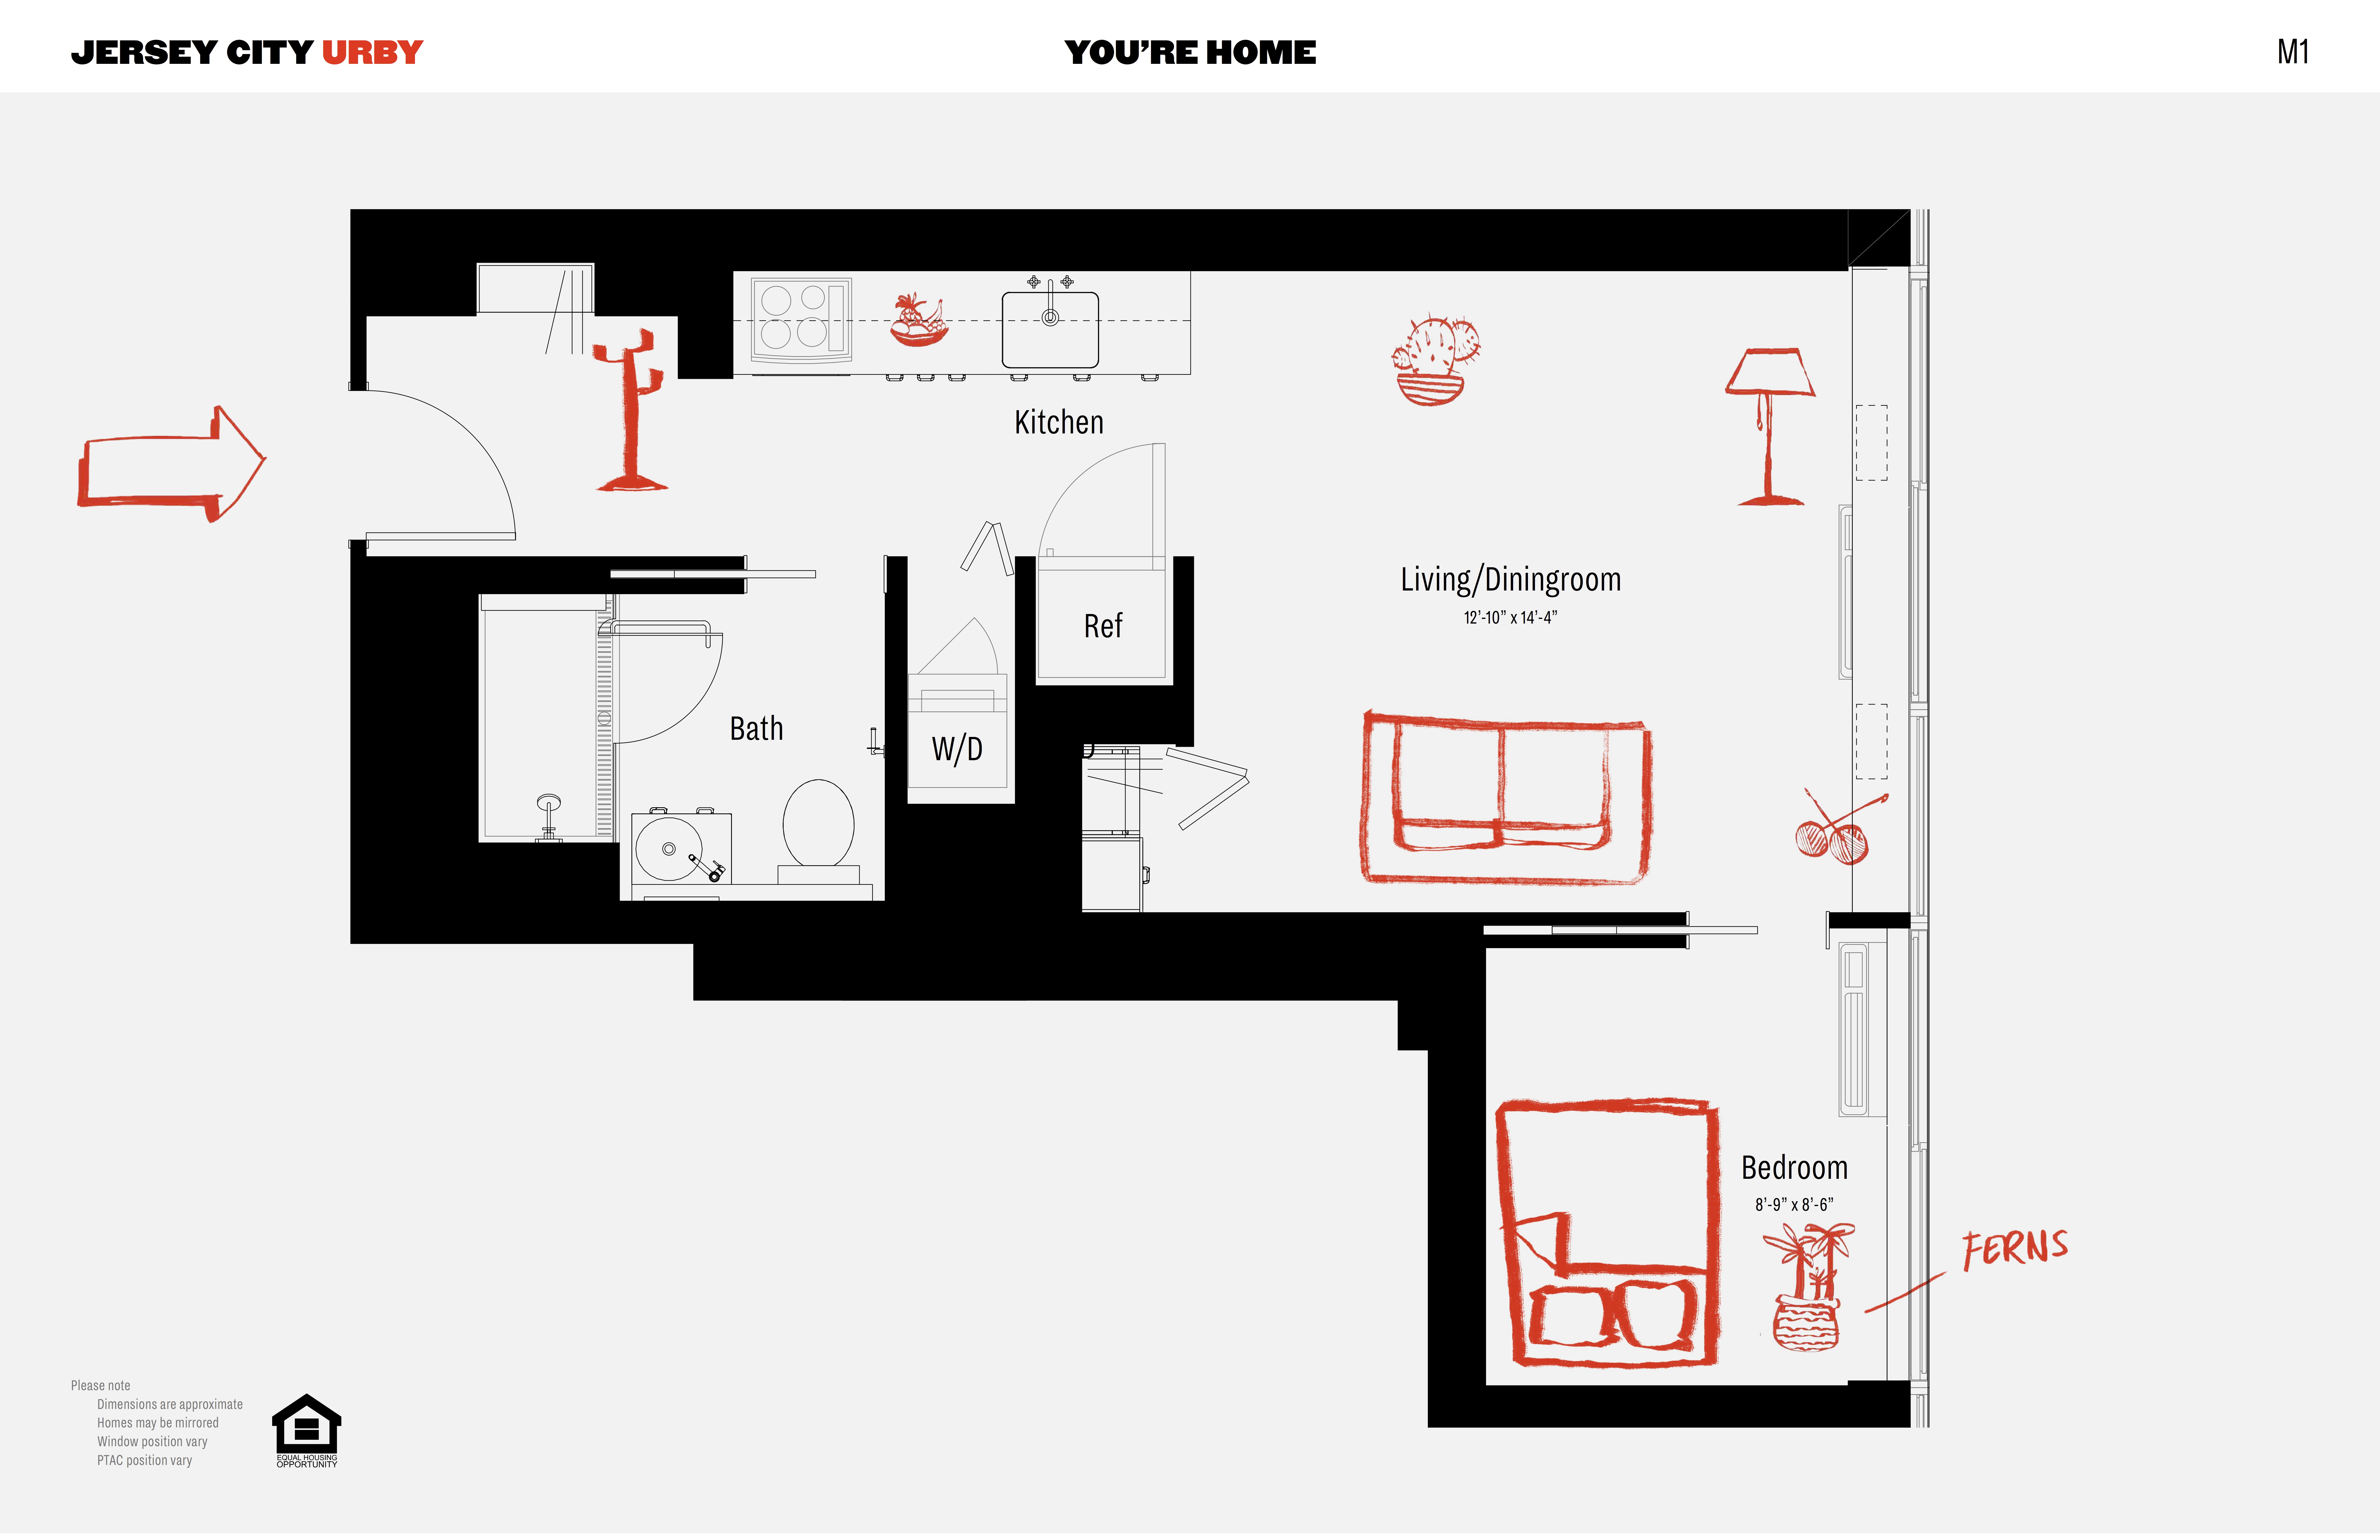 Pier house floor plans jersey city House and home design – Pier House Floor Plans